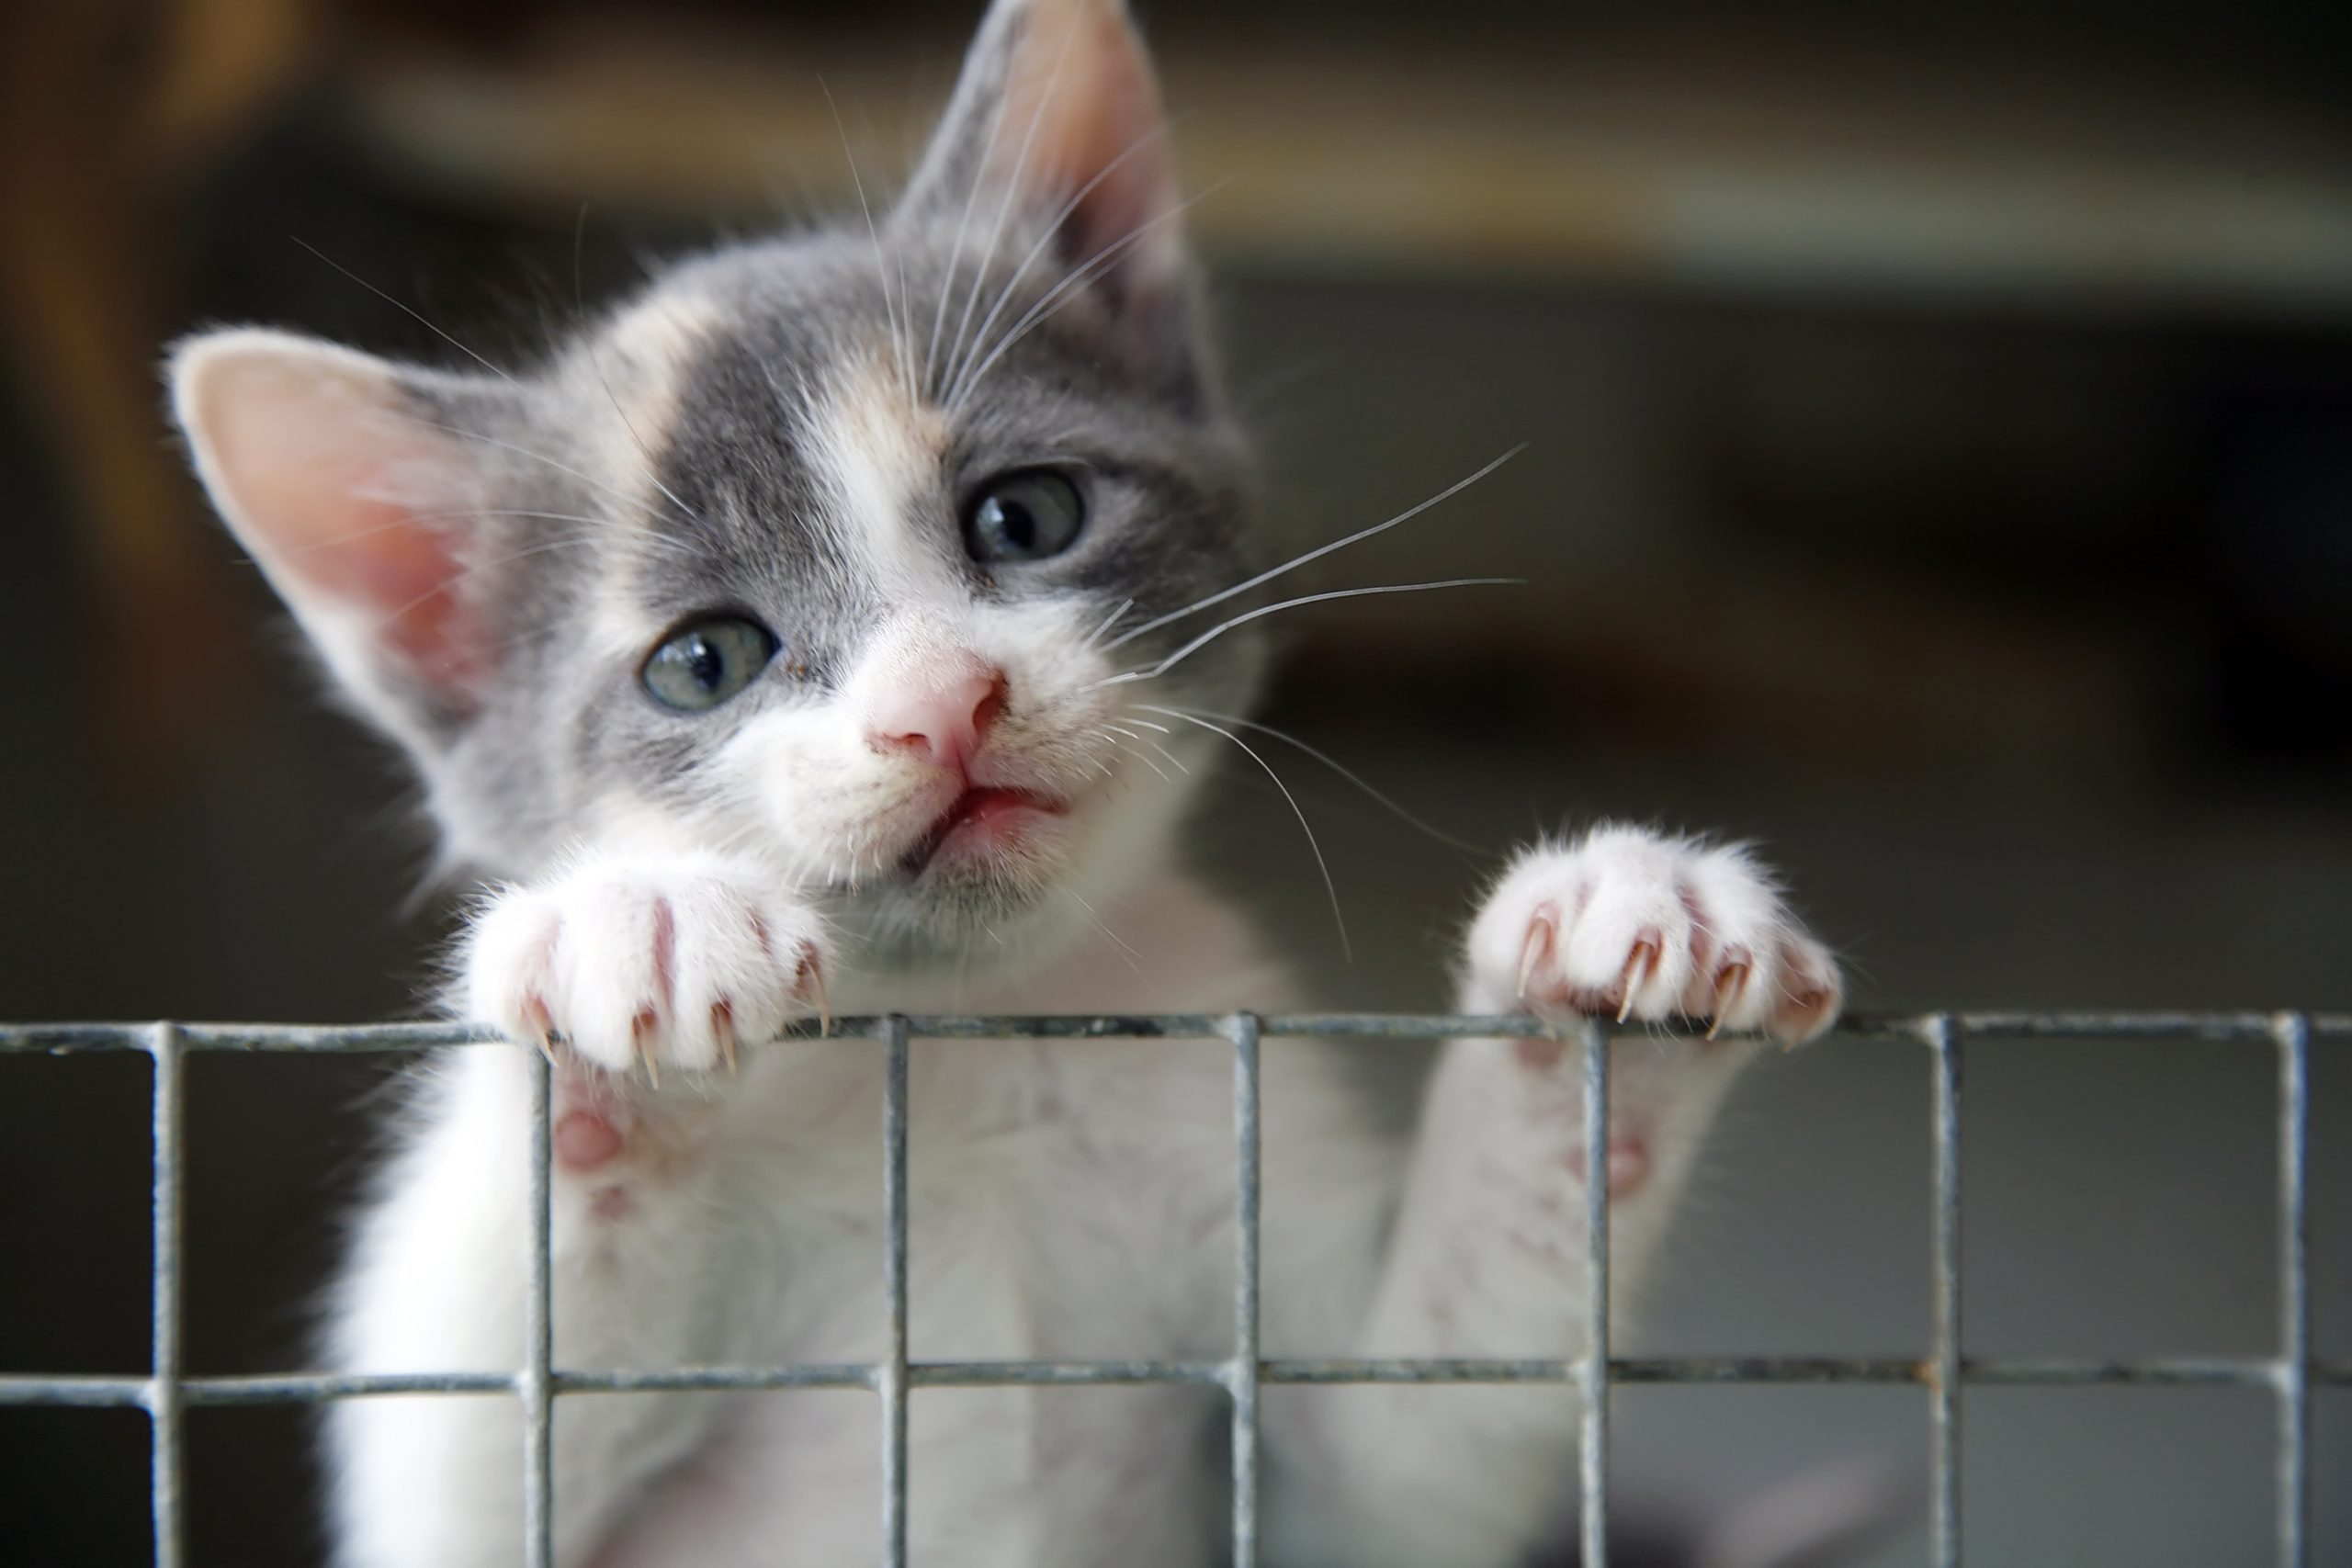 Sad looking kitten trying to climb over a wire fence